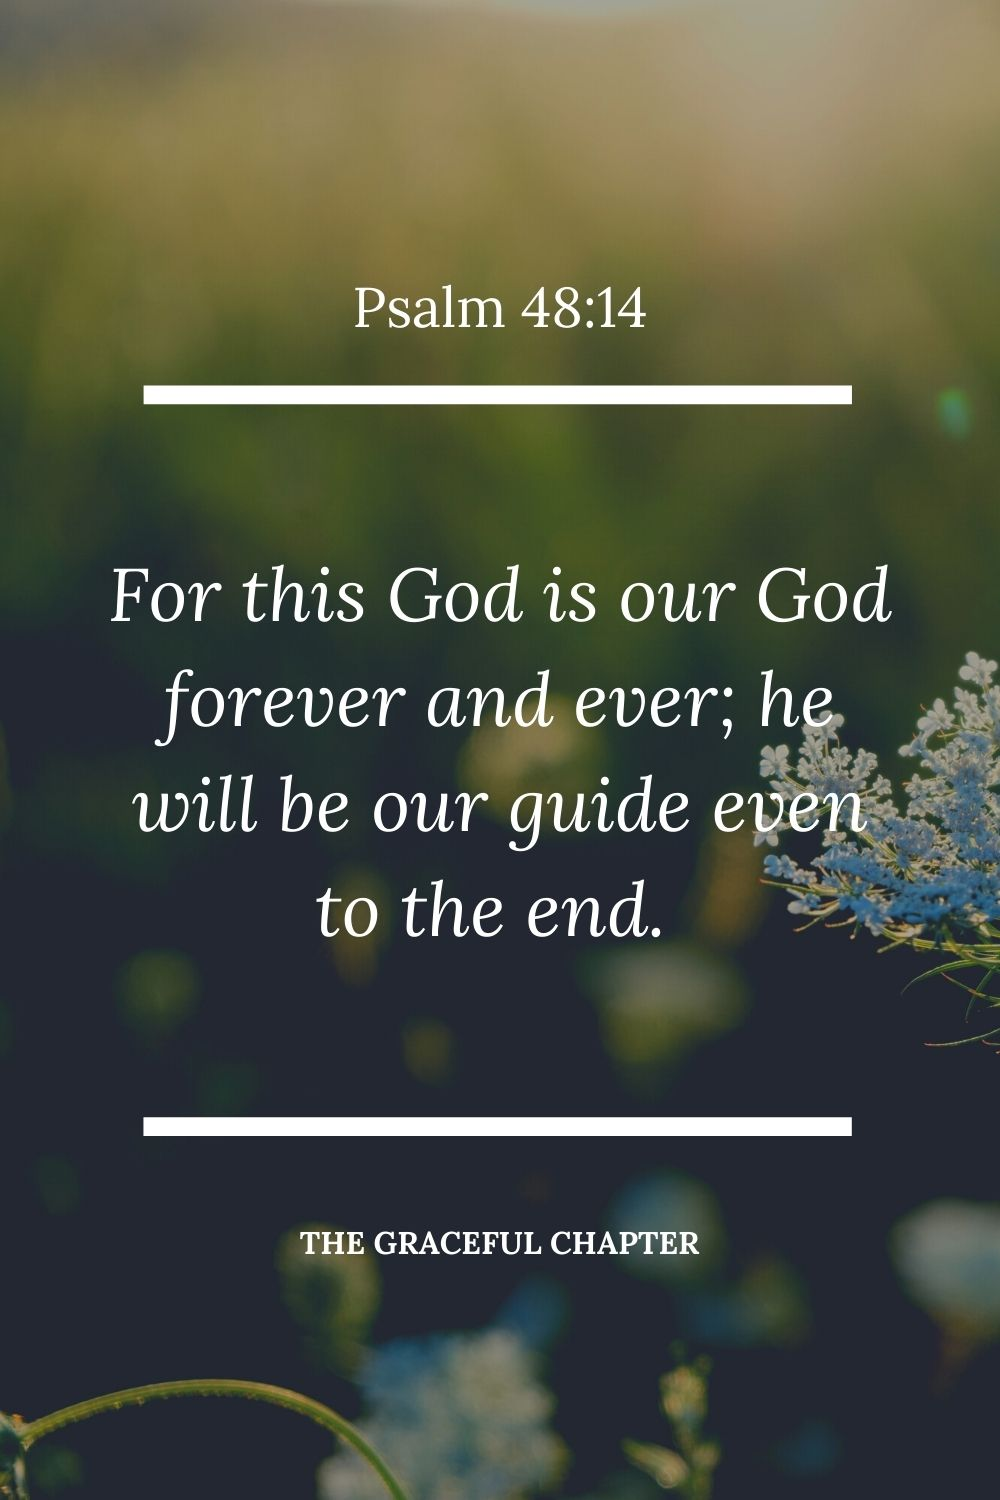 For this God is our God forever and ever;  he will be our guide even to the end.  Psalm 48:14